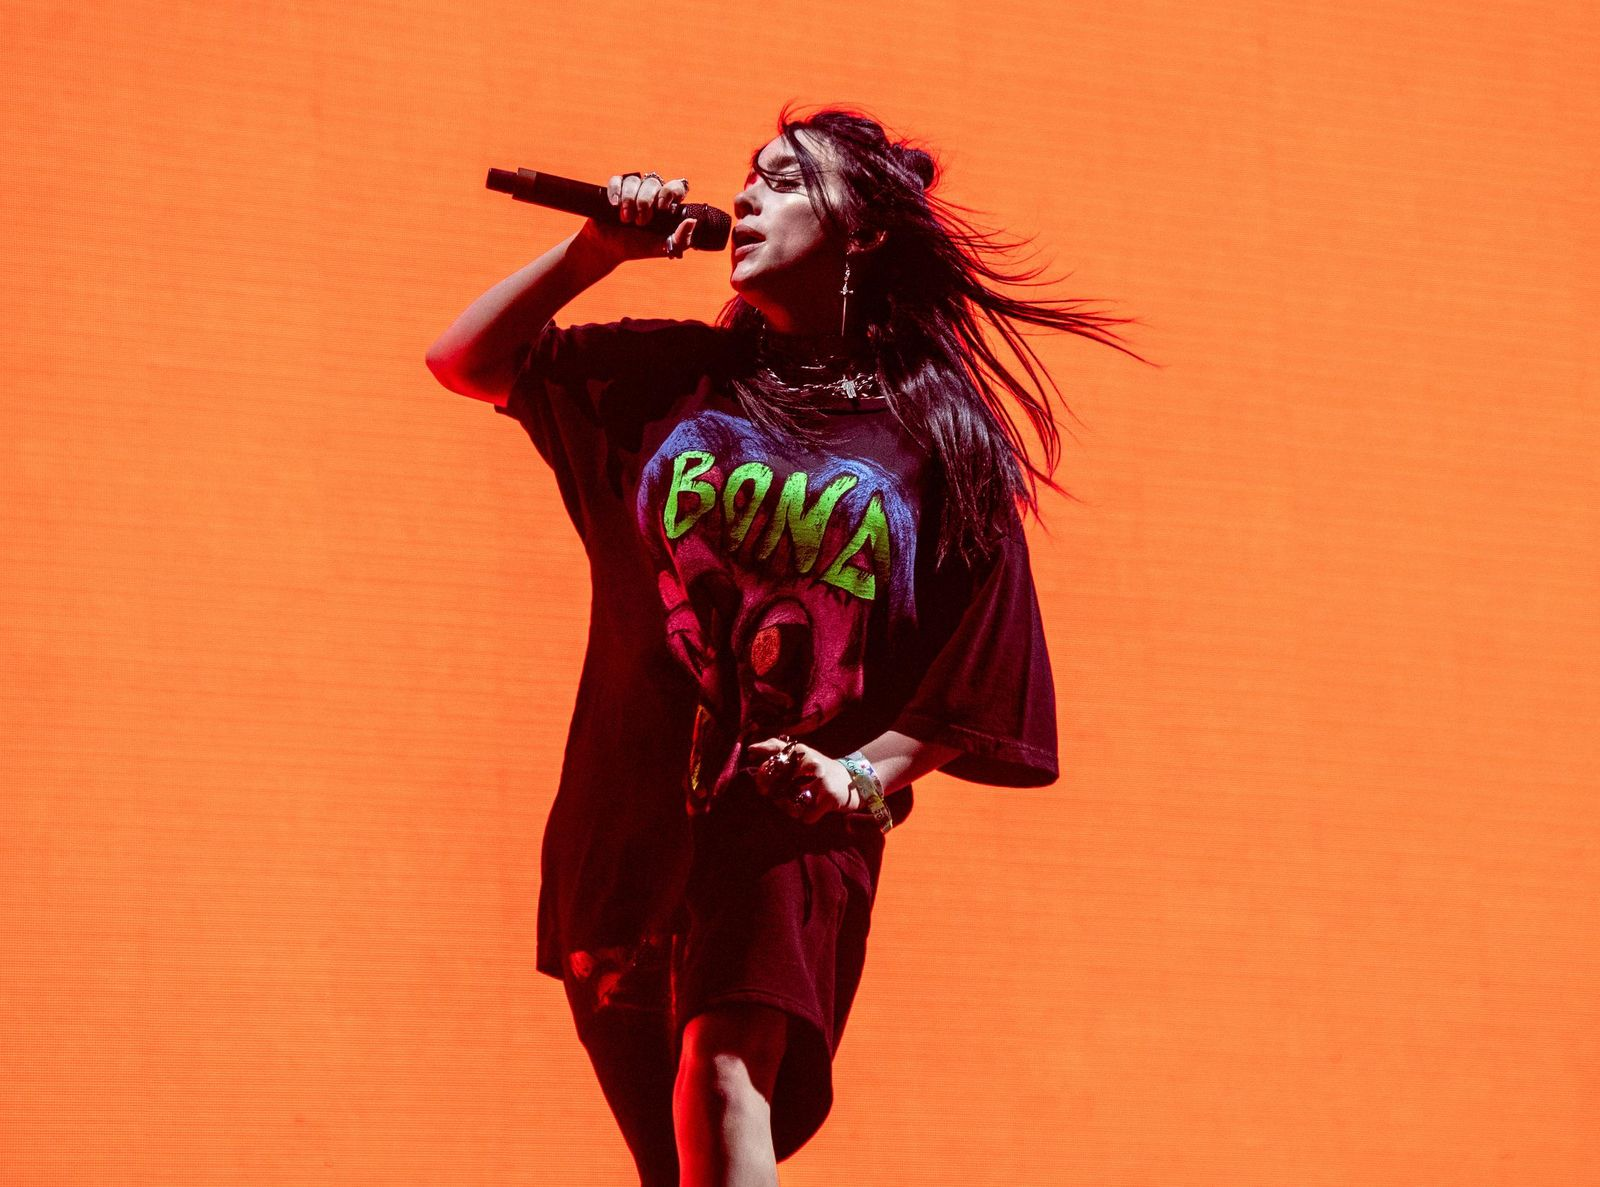 FILE - This April 20, 2019 file photo shows Billie Eilish performing at the Coachella Music & Arts Festival in Indio, Calif. (Photo by Amy Harris/Invision/AP)